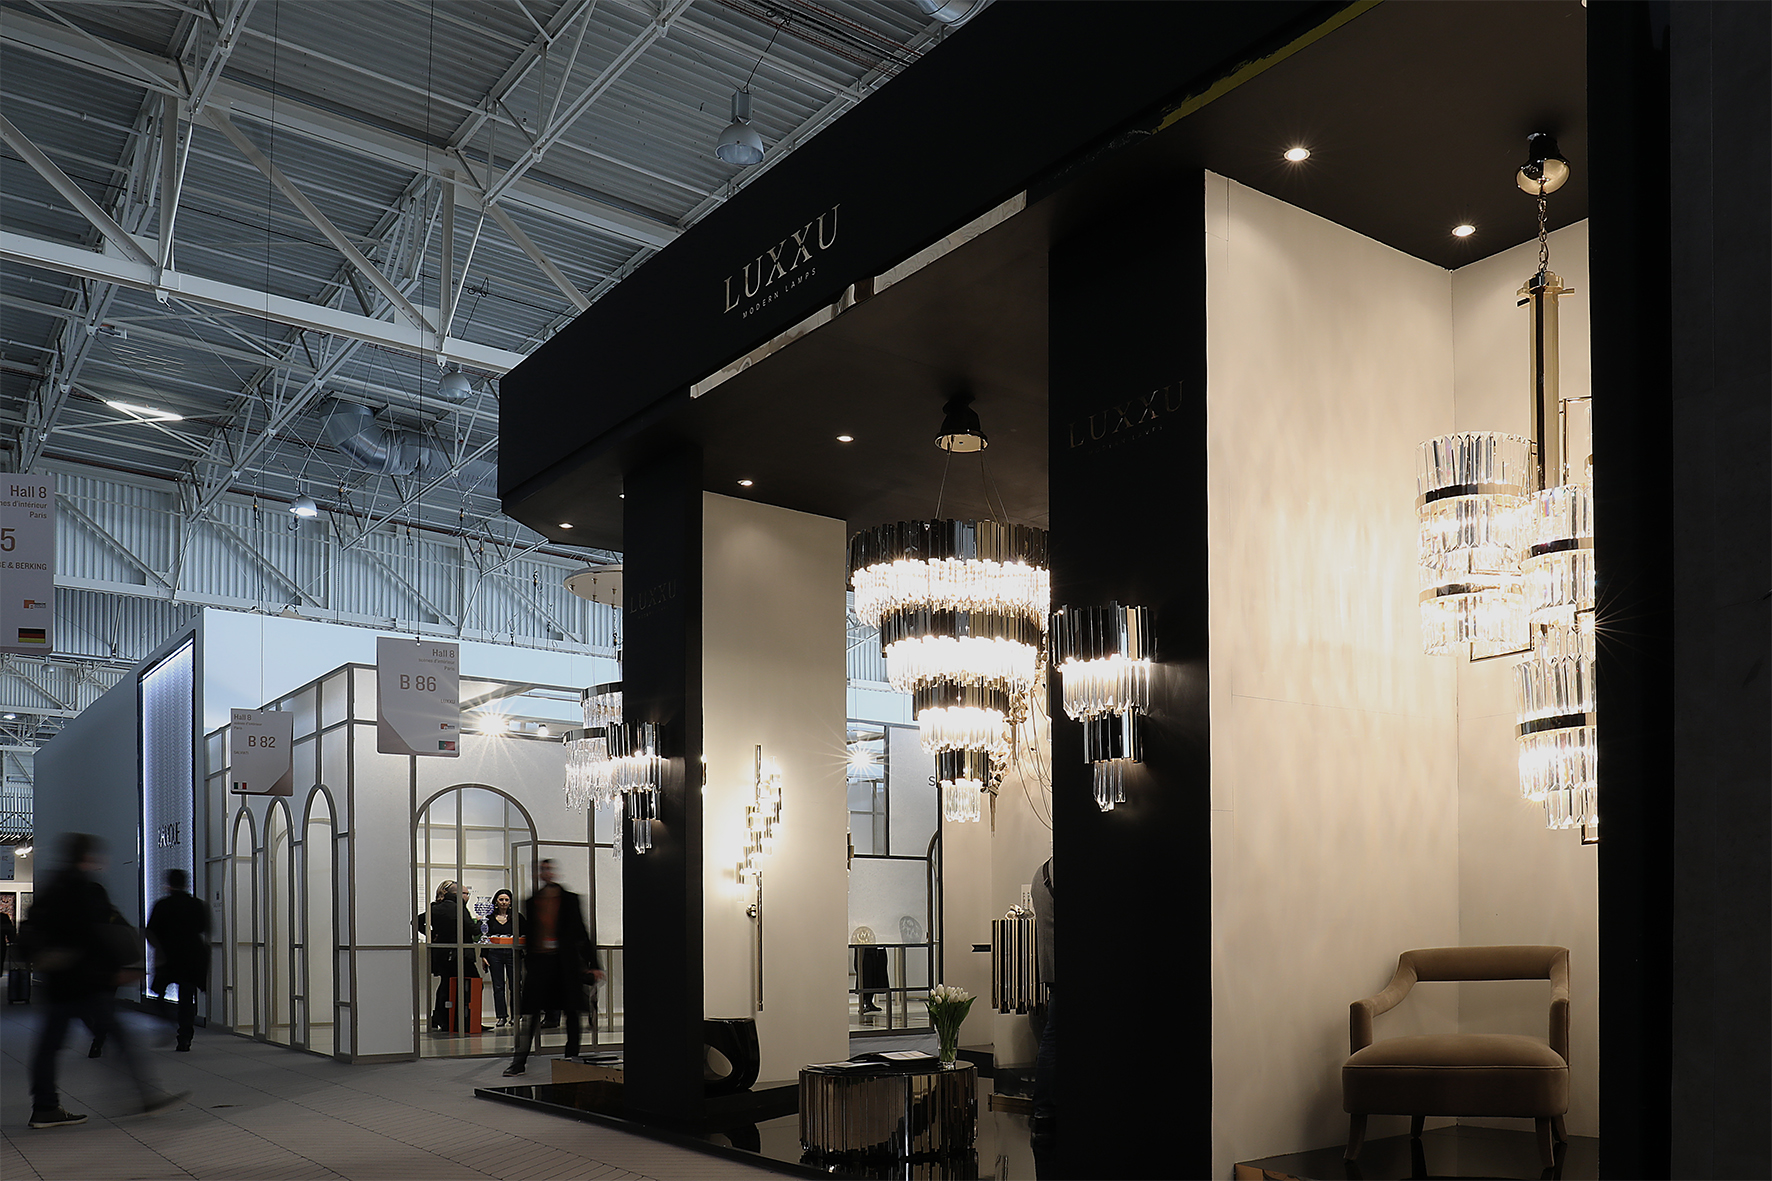 What to Expect From LUXXU at Maison et Objet 2017 LUXXU Find Empire Tables by LUXXU What to Expect From LUXXU at Maison et Objet 2017 5 LUXXU Find Empire Tables by LUXXU What to Expect From LUXXU at Maison et Objet 2017 5